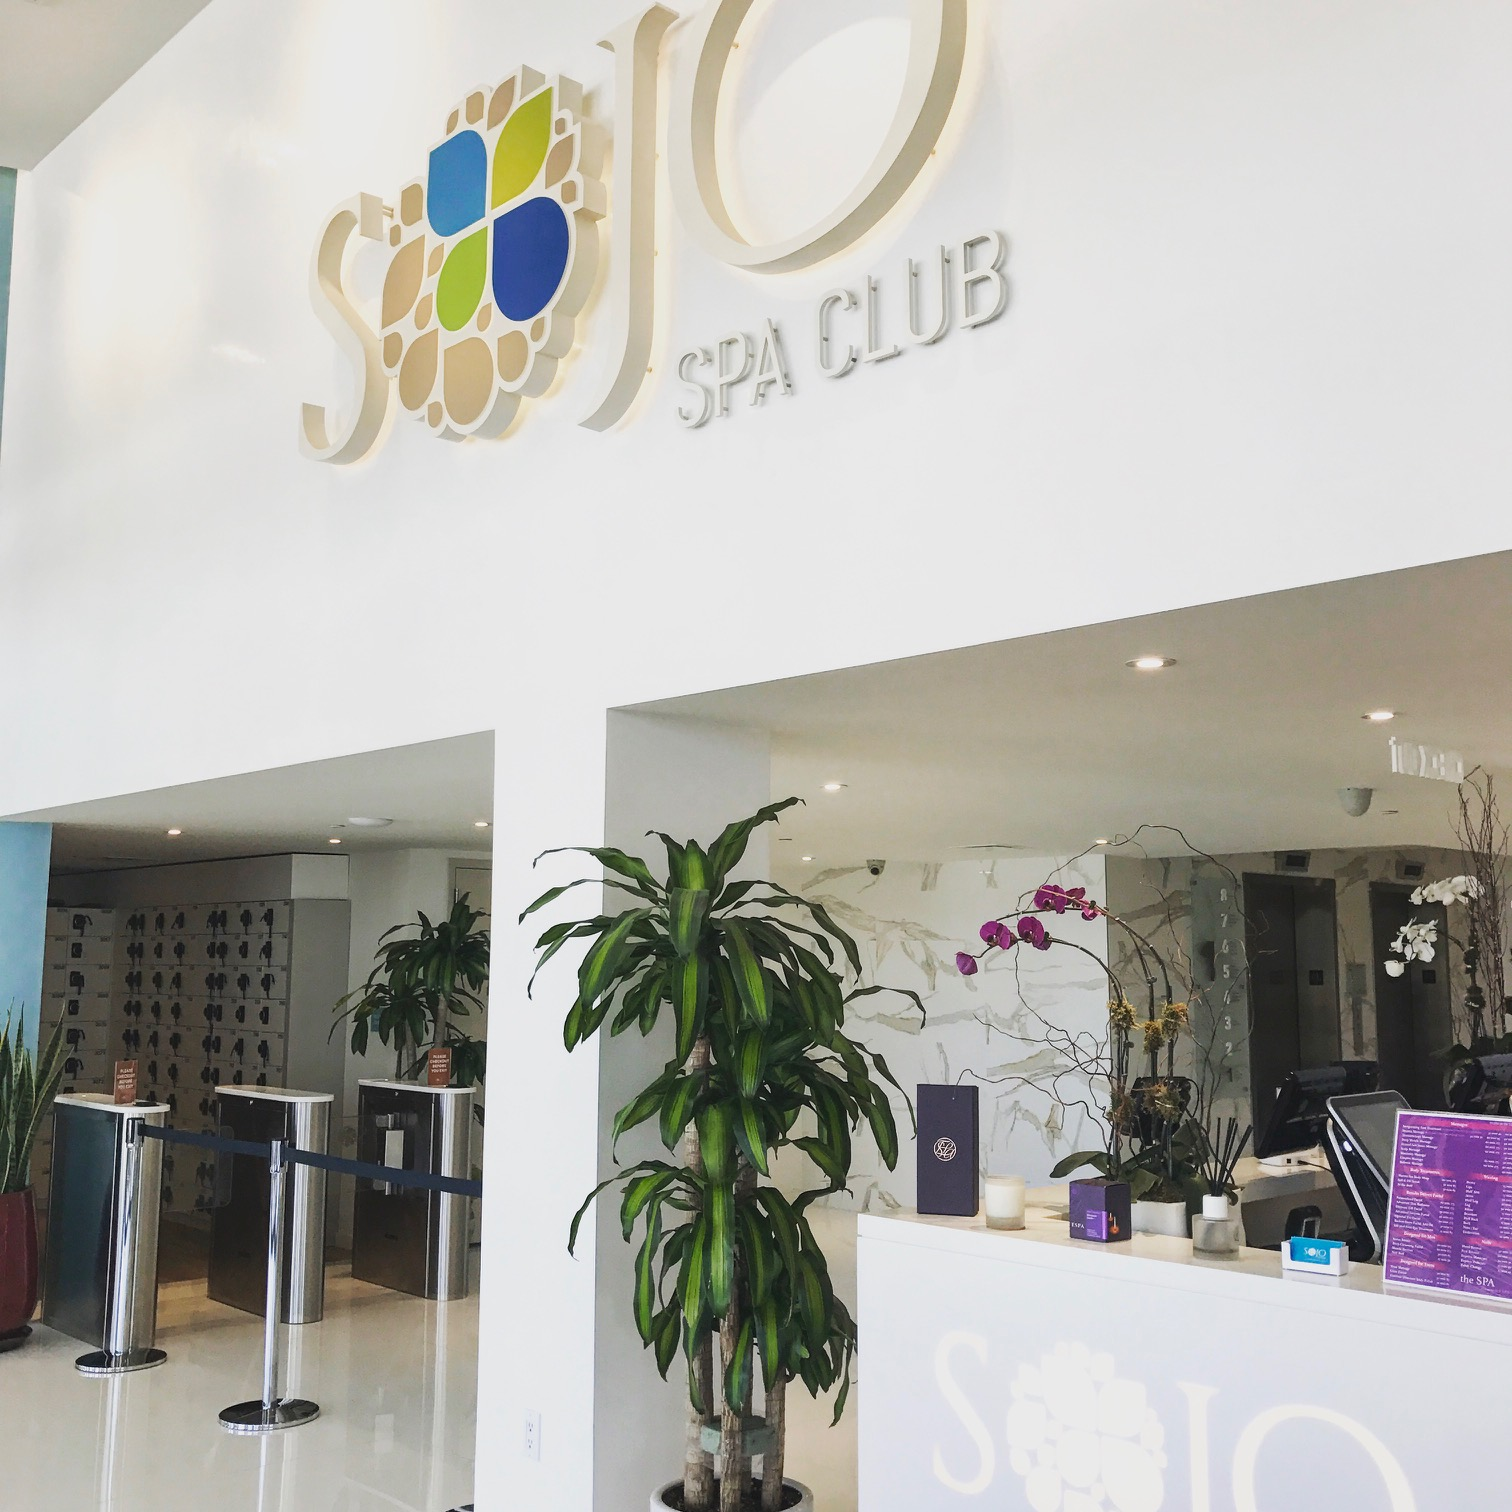 Edgewater Park Nj >> Our Trip To Sojo Spa Club in Edgewater {The Ultimate ...